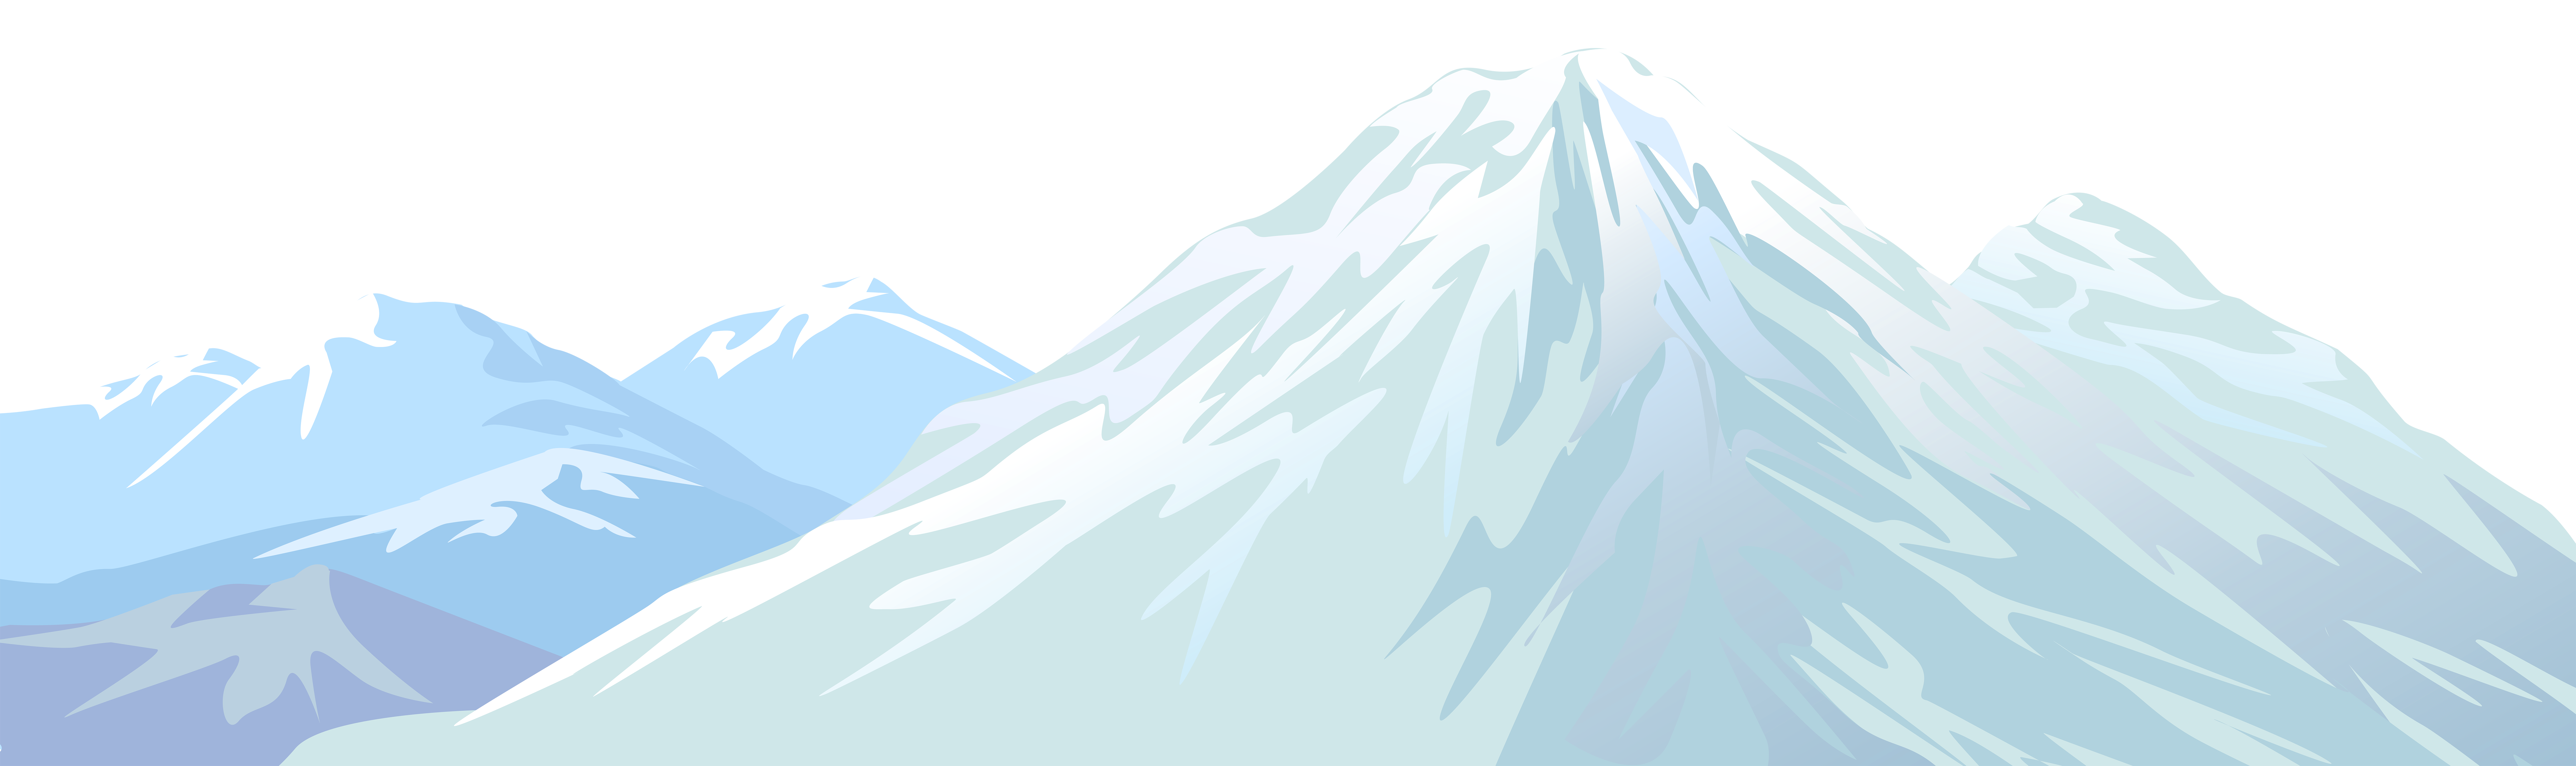 Winter Snowy Mountain Transparent Png Clip Art Image Gallery Yopriceville High Quality Images And Transparent Png Free Clipart Art Images Clip Art Image